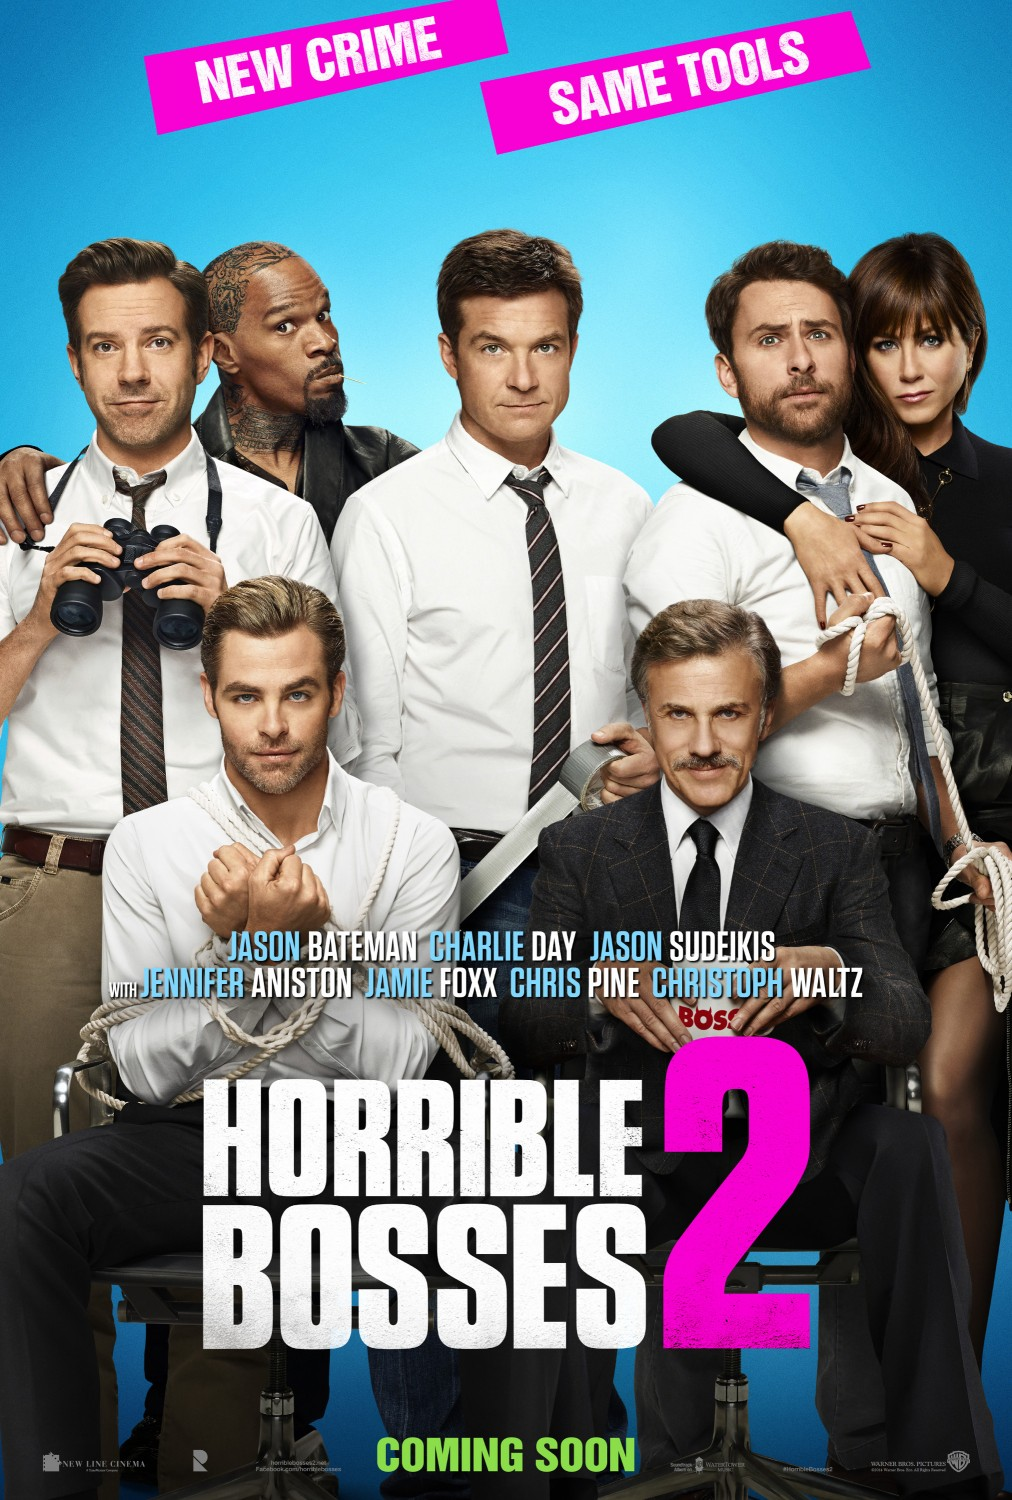 horrible_bosses_2_movie_poster_2